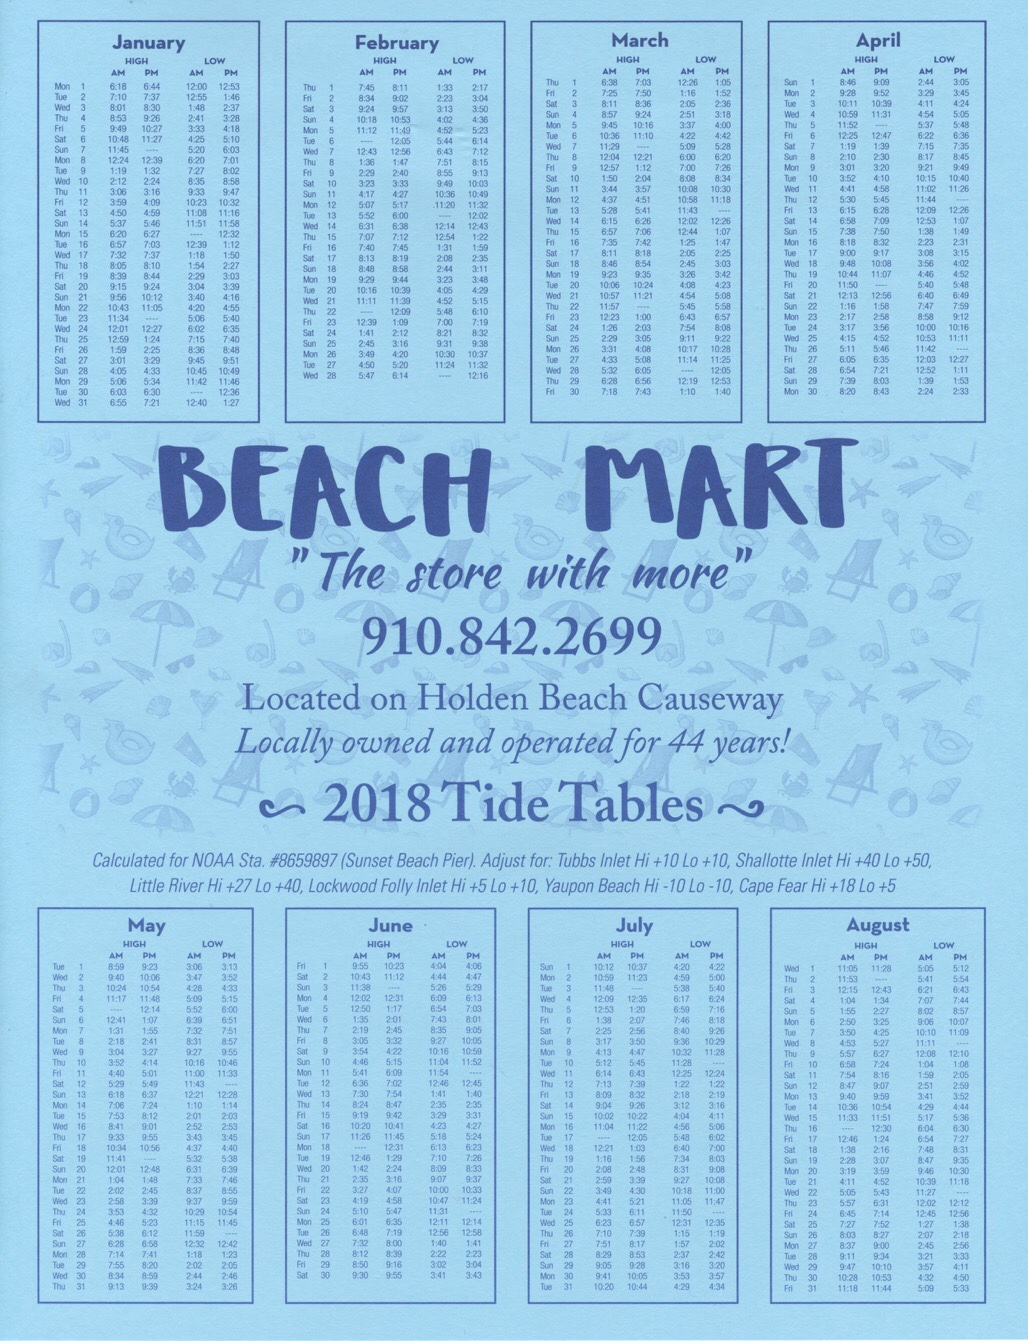 Nsw tide charts images chart design ideas holden beach nc tide chart gallery chart design ideas holden beach tide charts beach mart geenschuldenfo nvjuhfo Gallery